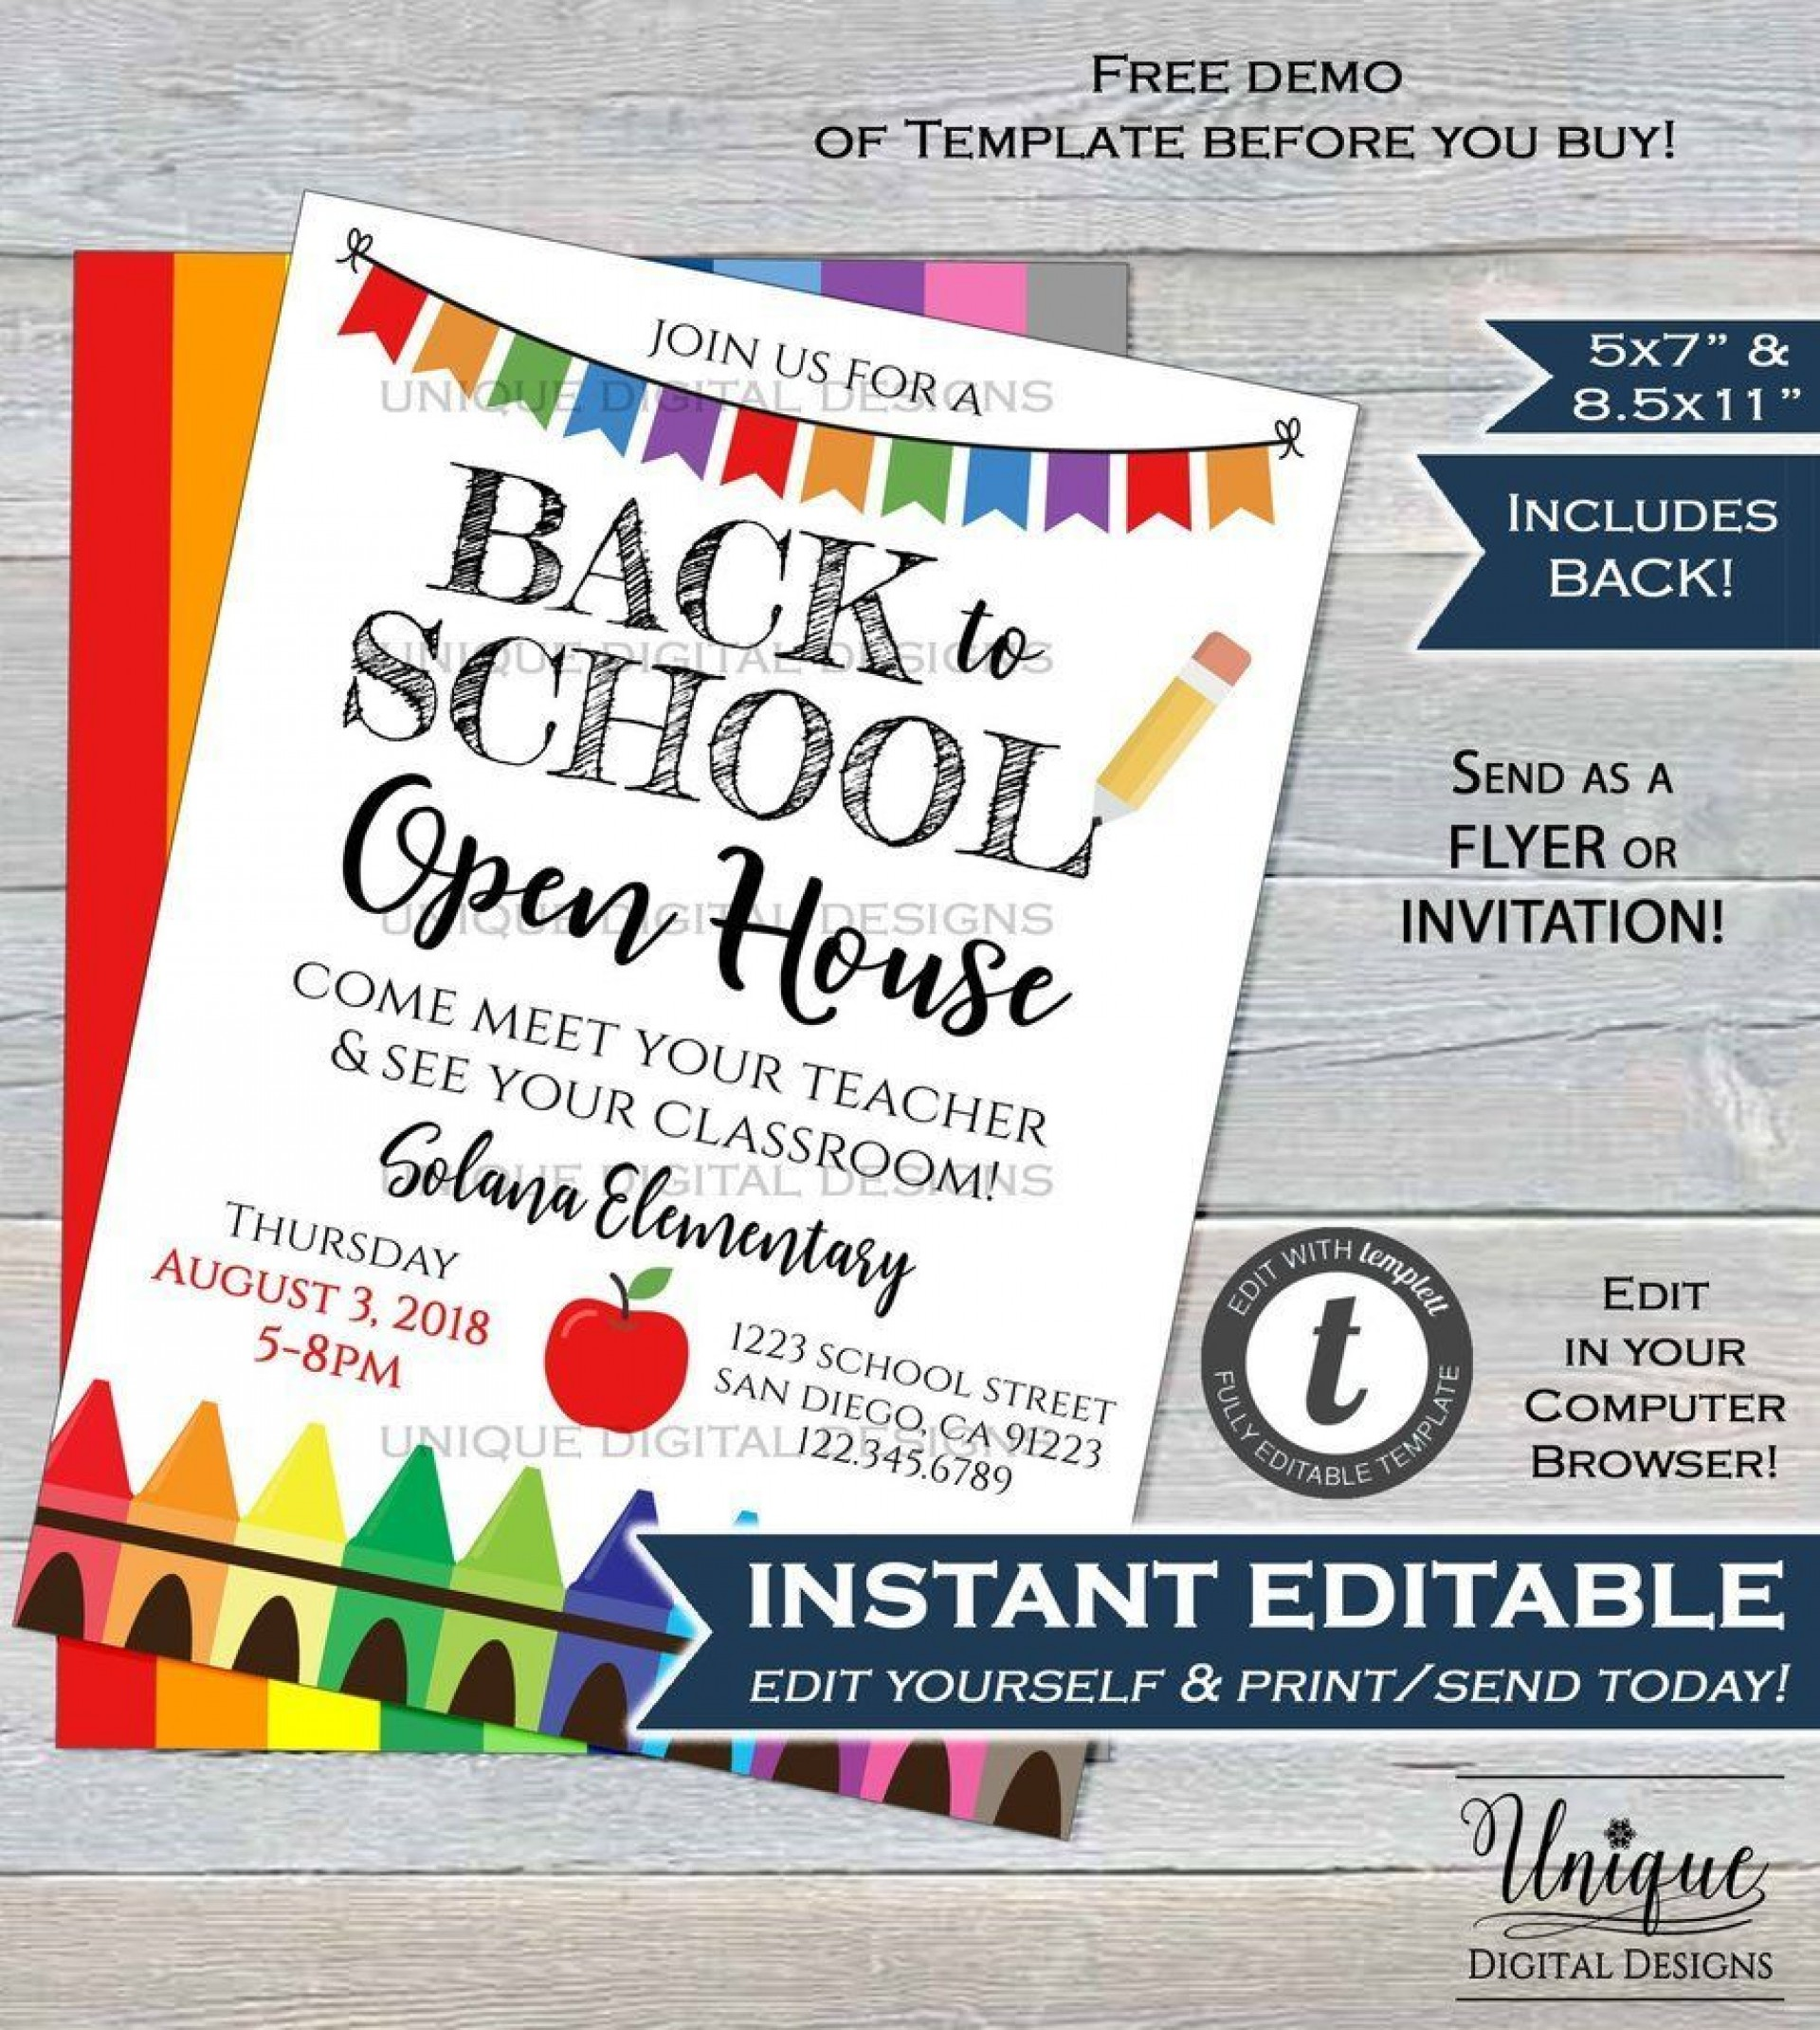 School Open House Invitation Template Free